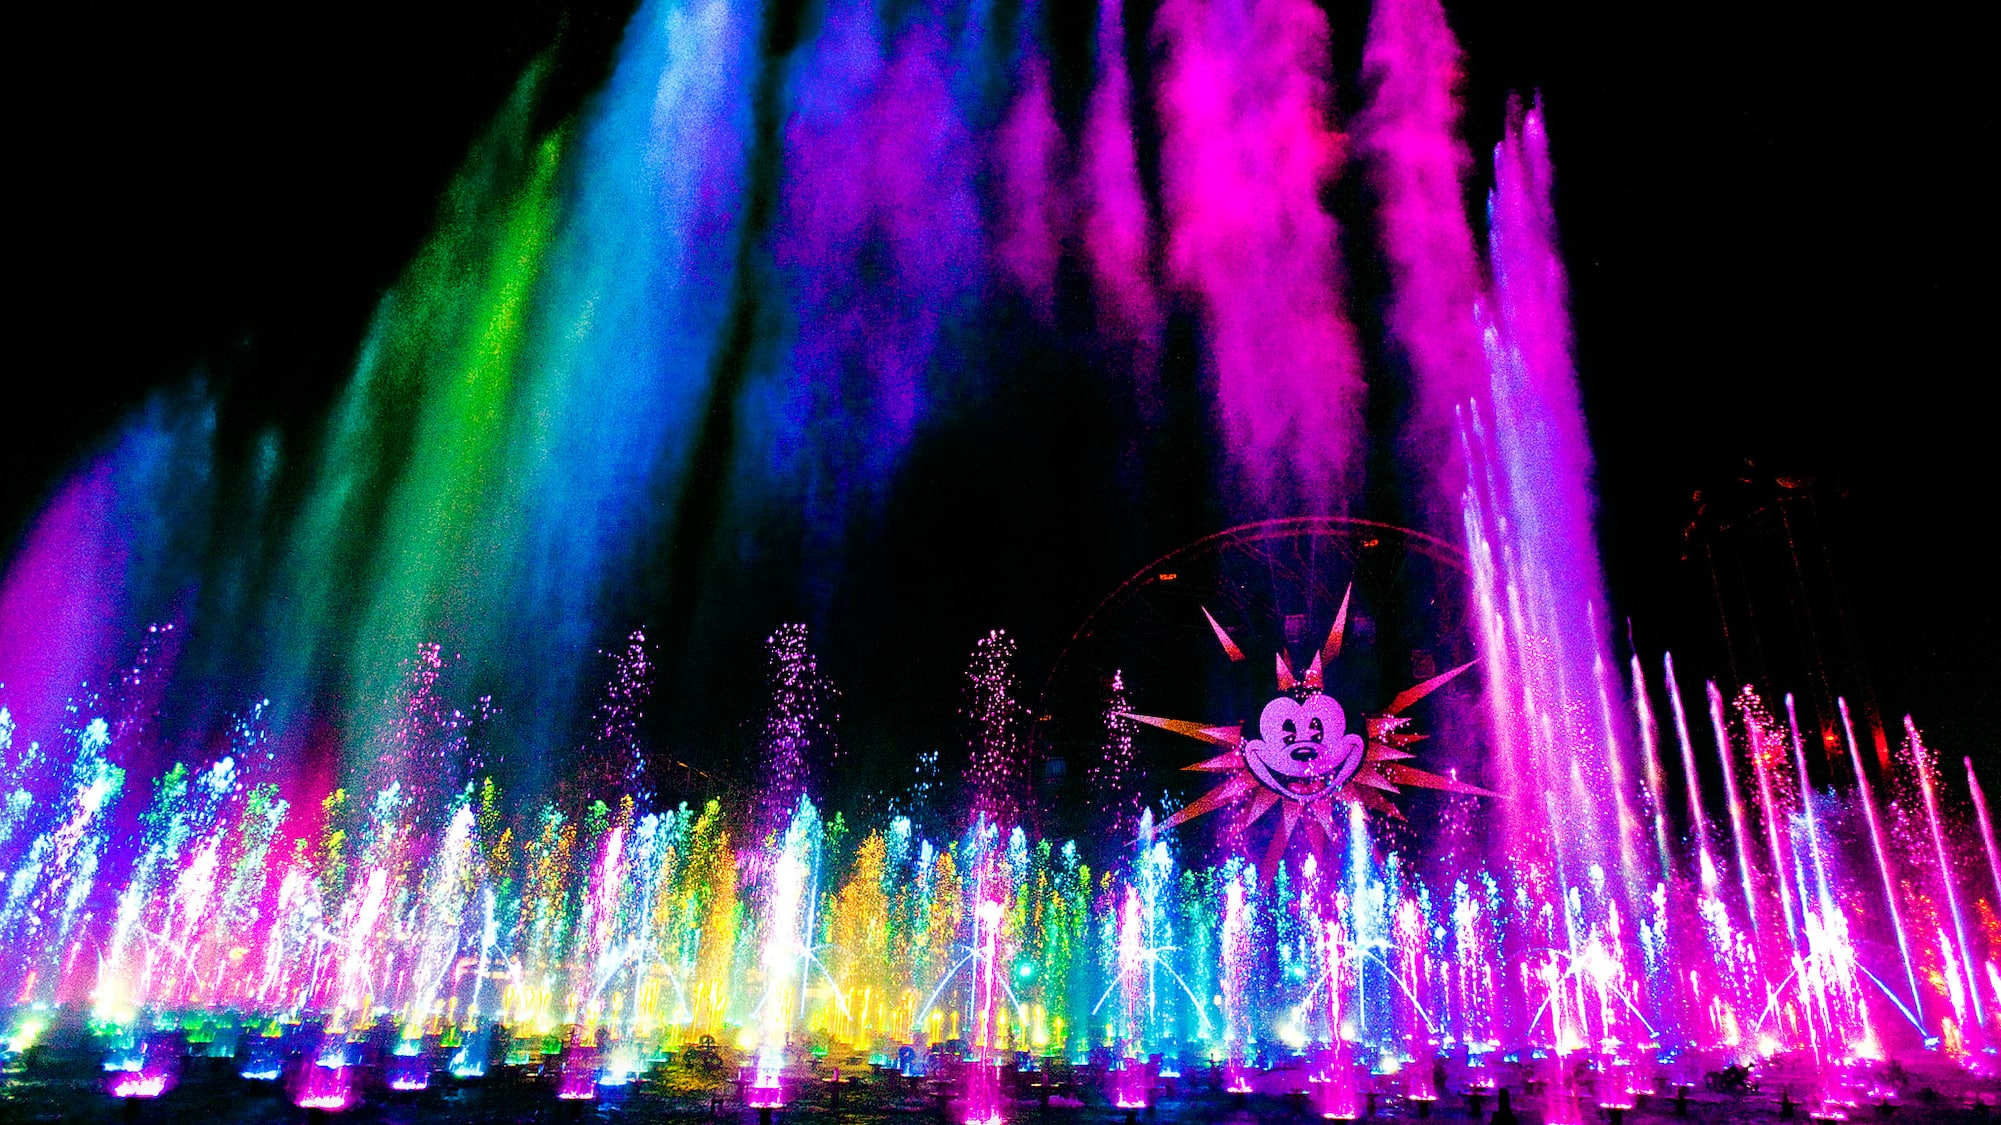 World of Color fountains and colored mist